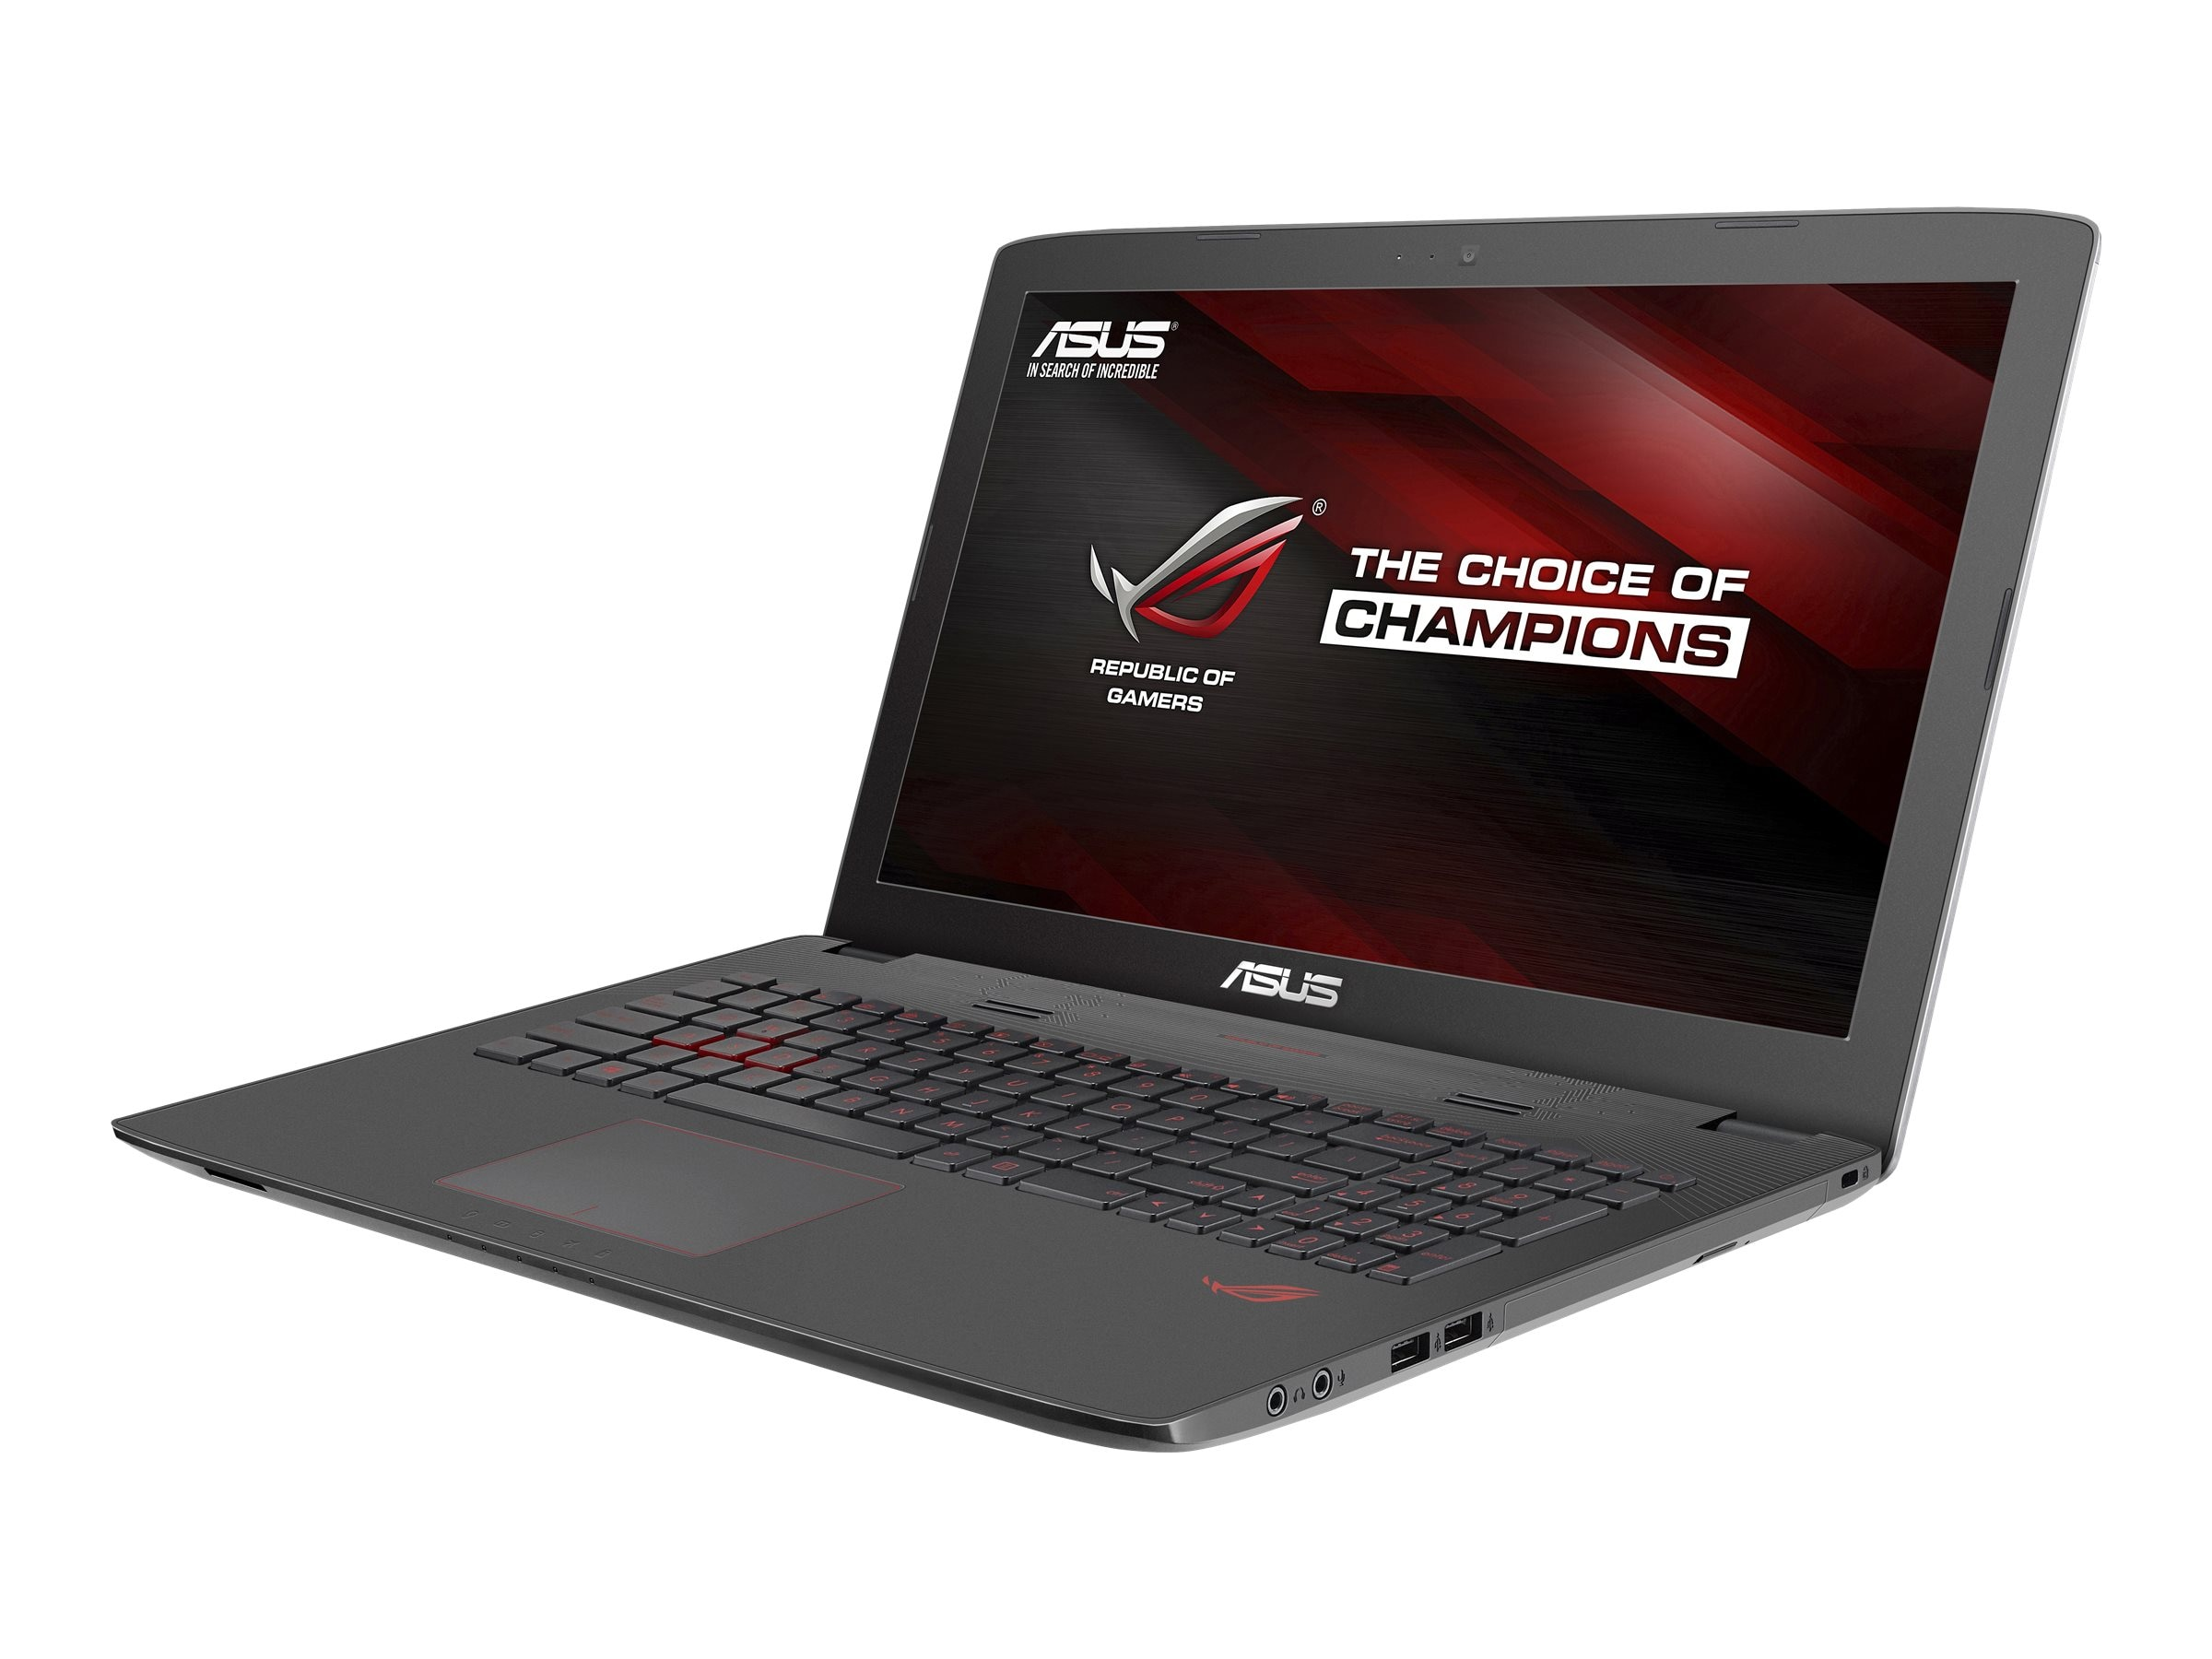 Asus GL752VW-DH74 Image 1